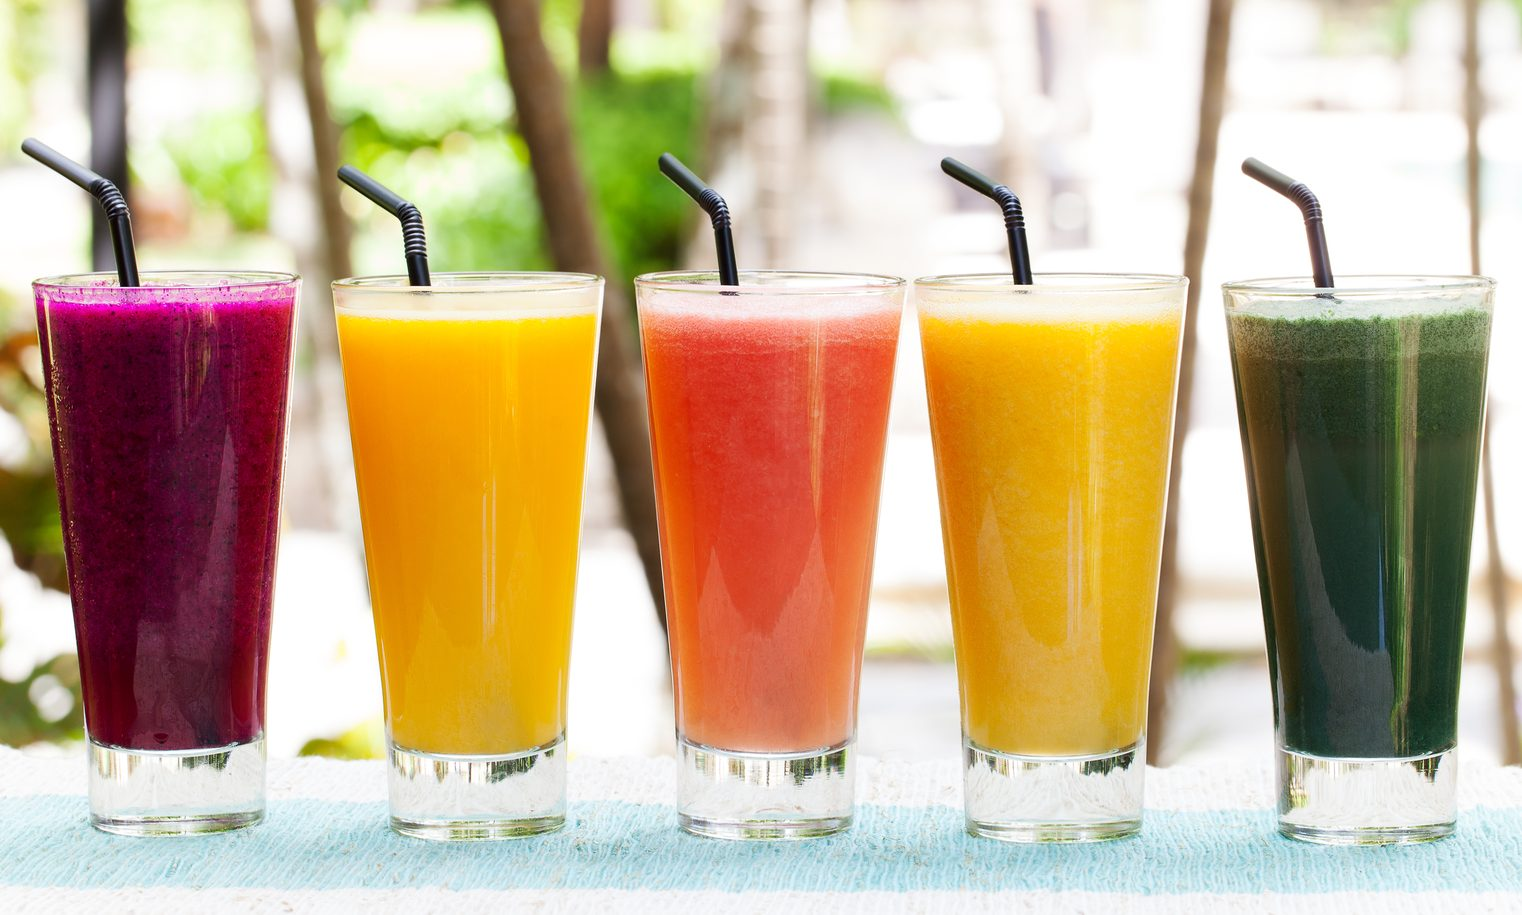 Assortment juices, smoothies, beverages, drinks variety